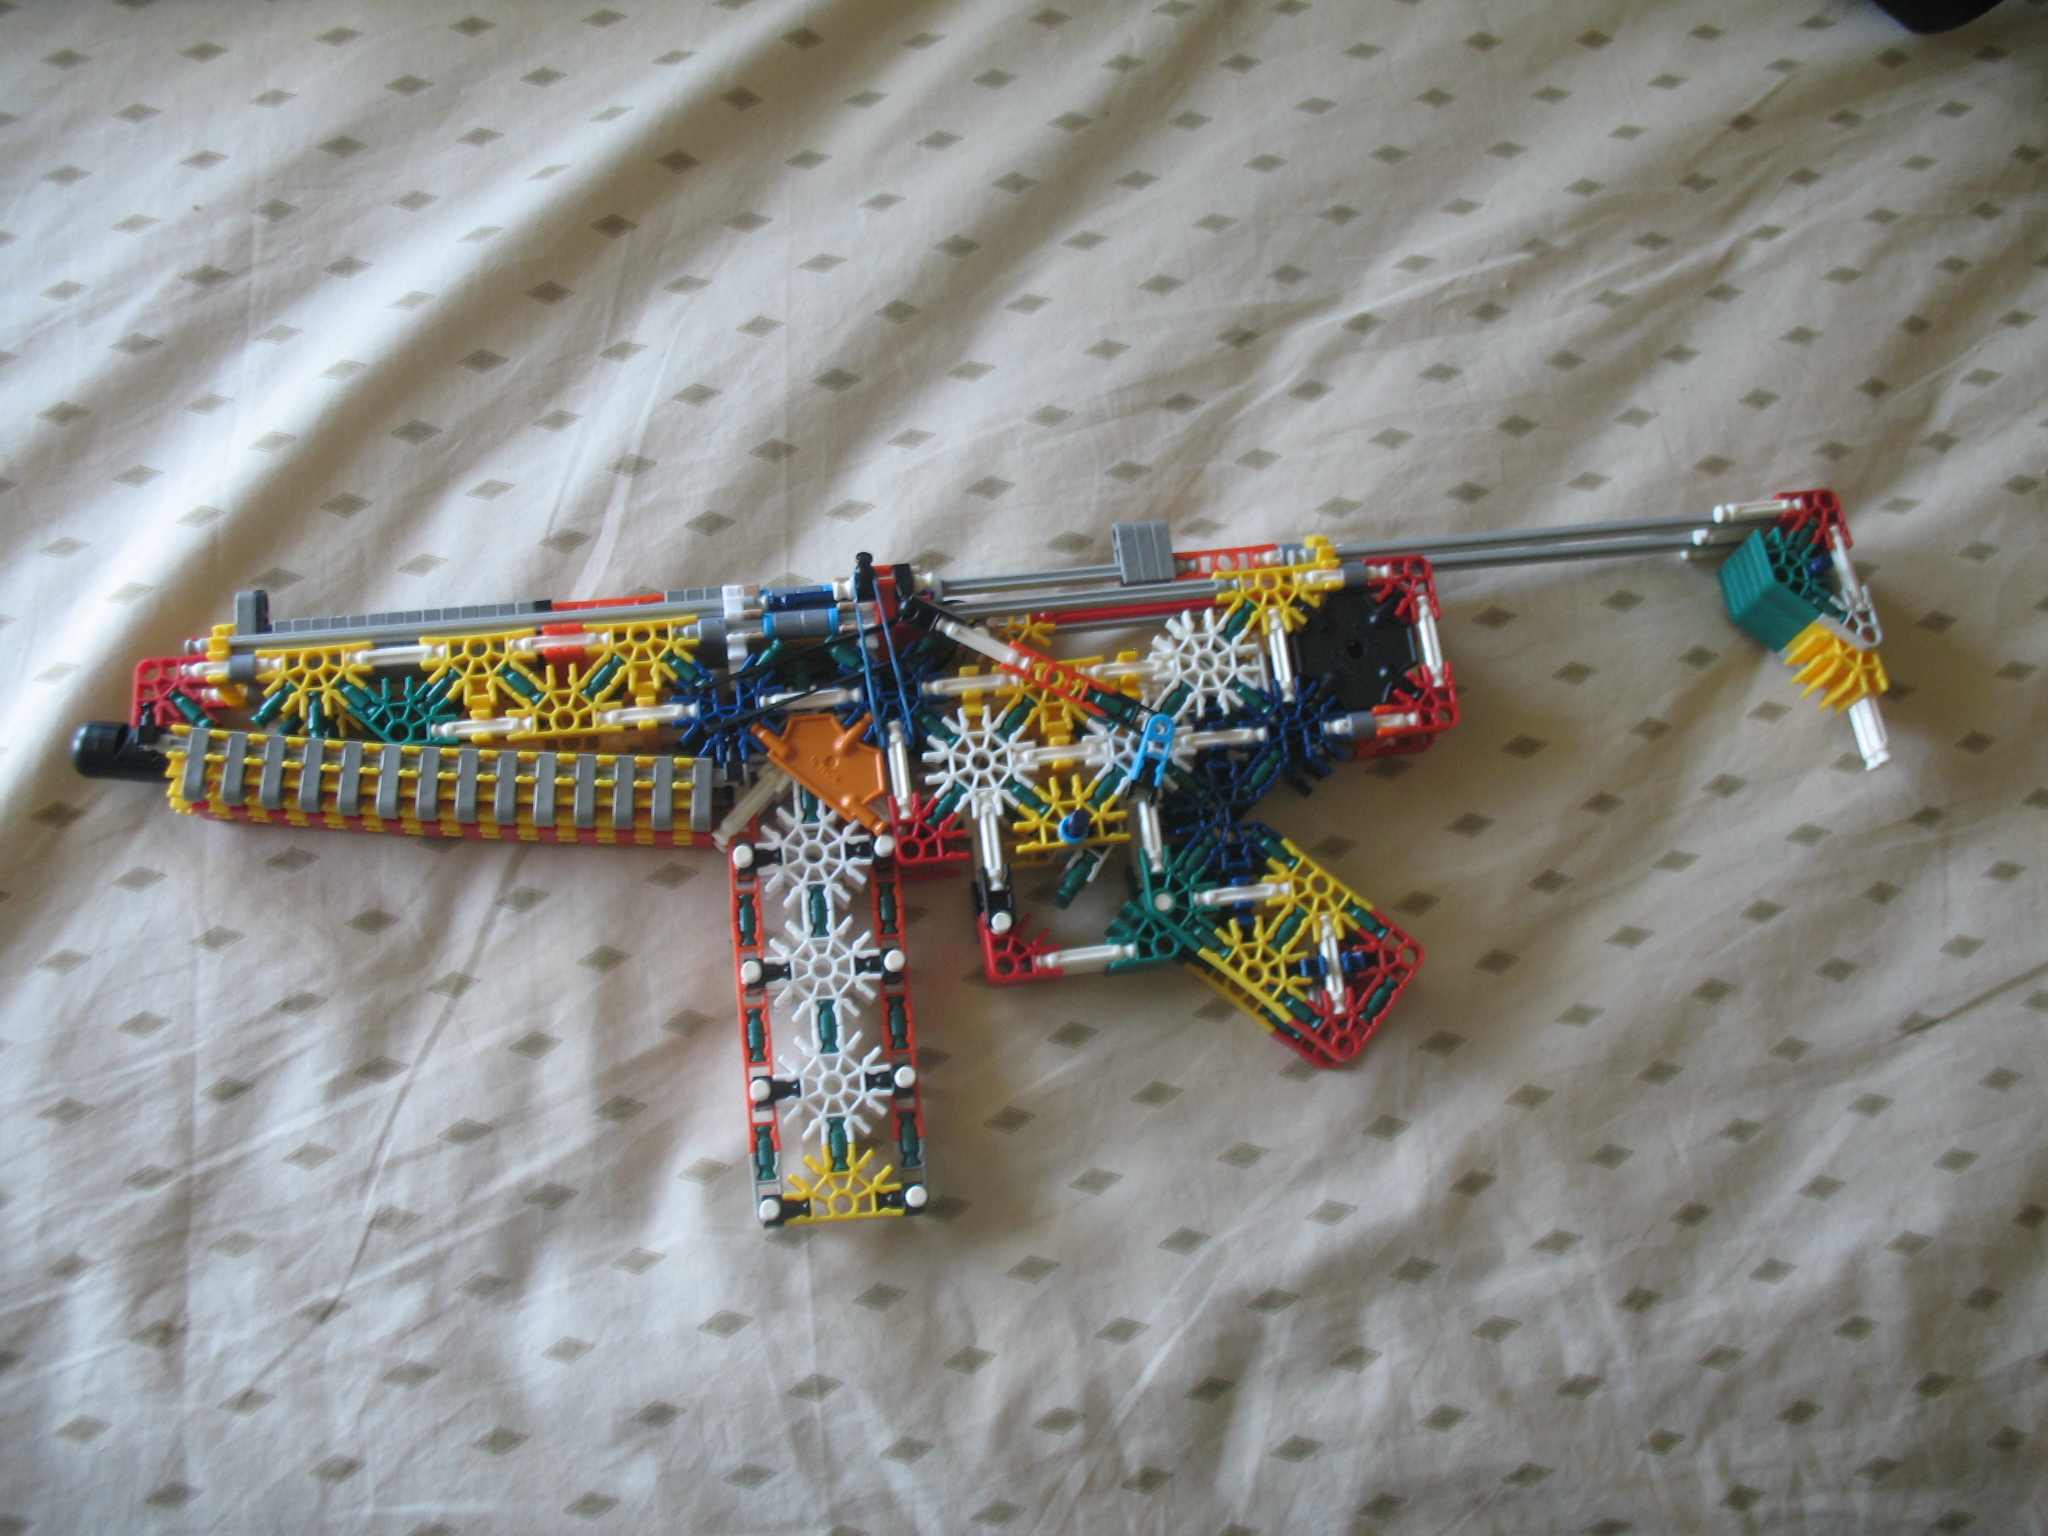 Picture of Realistic K'nex Mp5 With Working Magazine and Adjustable Stock .:unfinished:.